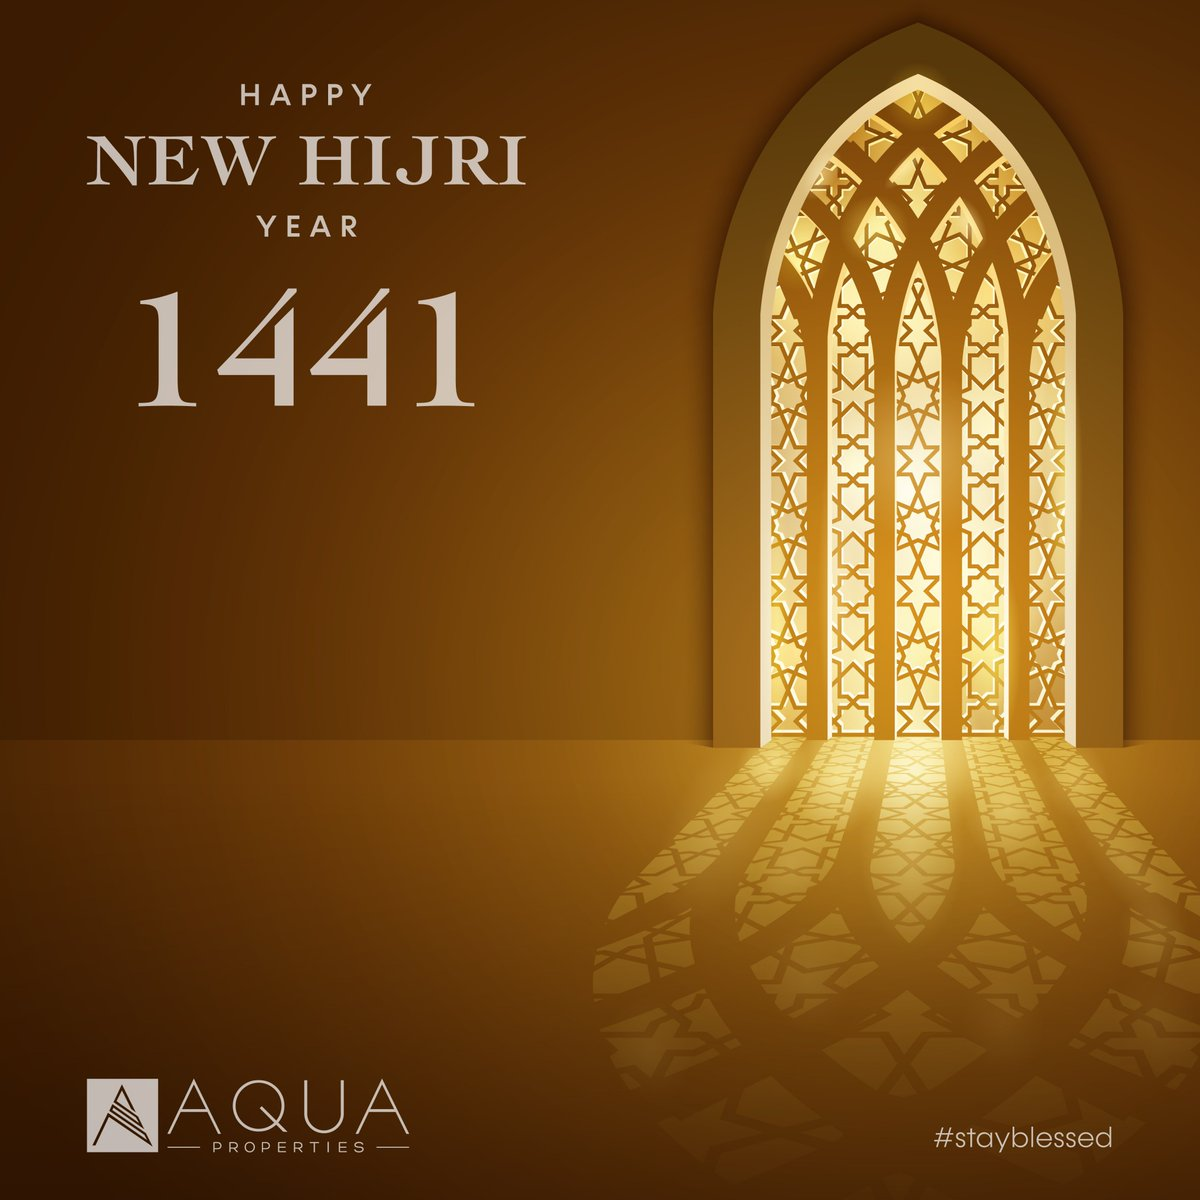 Happy Islamic New Year! Best wishes from all of us at AQUA Properties.  #AQUAProperties #RealEstate #DubaiRealEstate #Hijri #NewYear #MyDubai #UAE https://t.co/SdUuDe7pLv